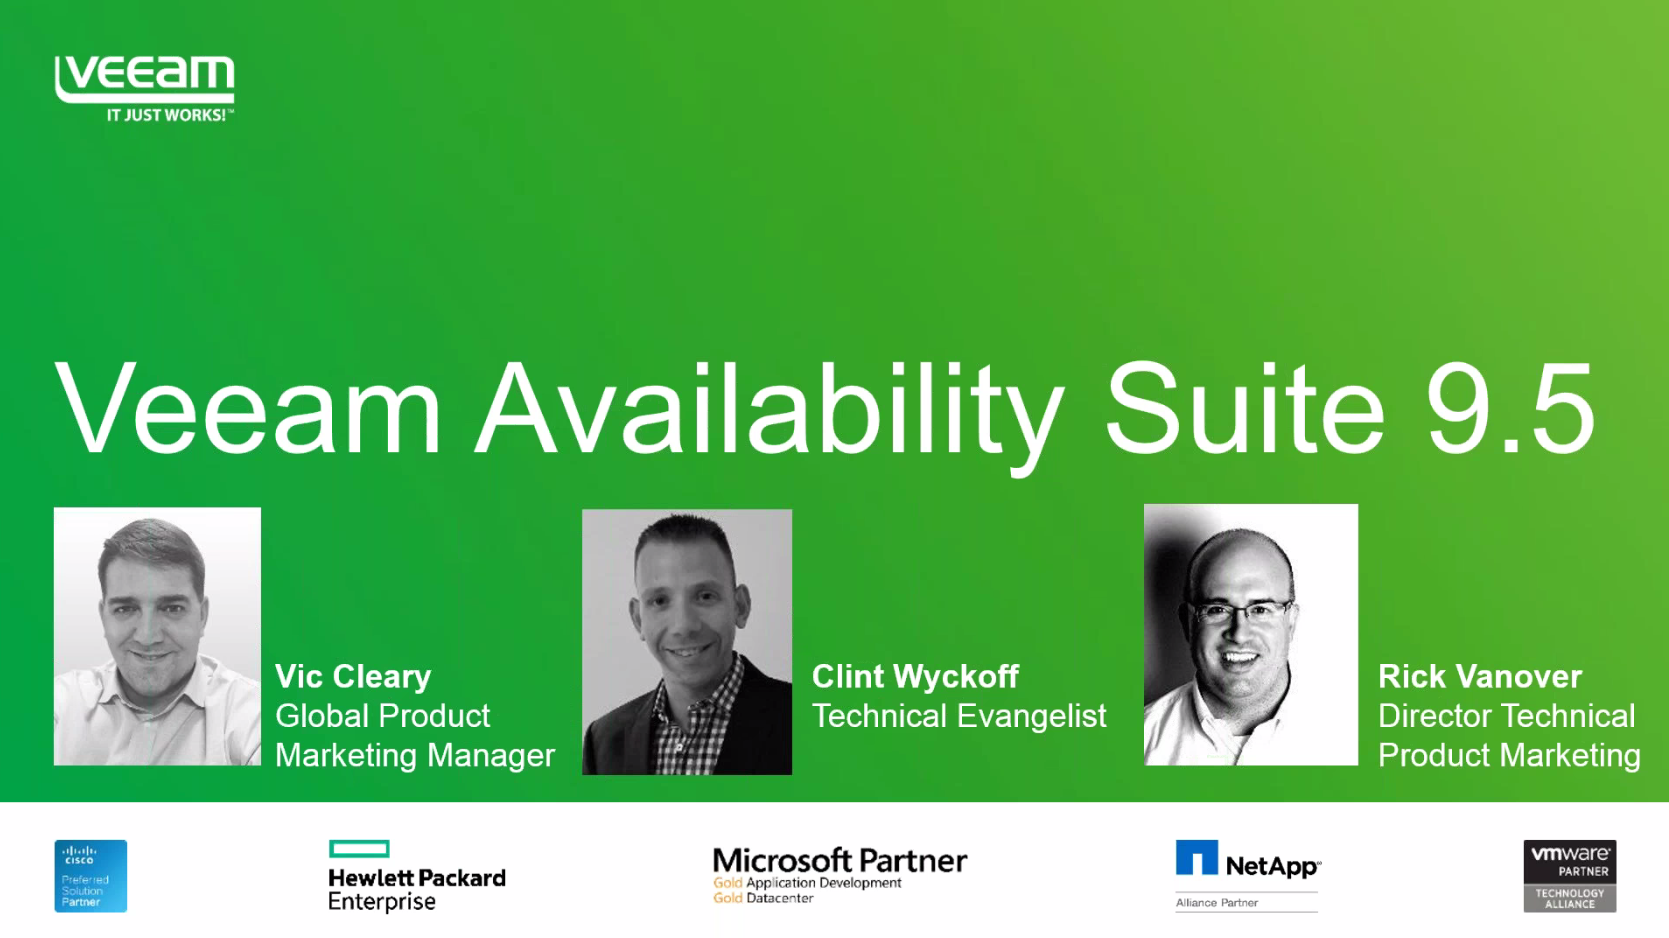 NEW Veeam Availability Suite 9.5 Feature Overview